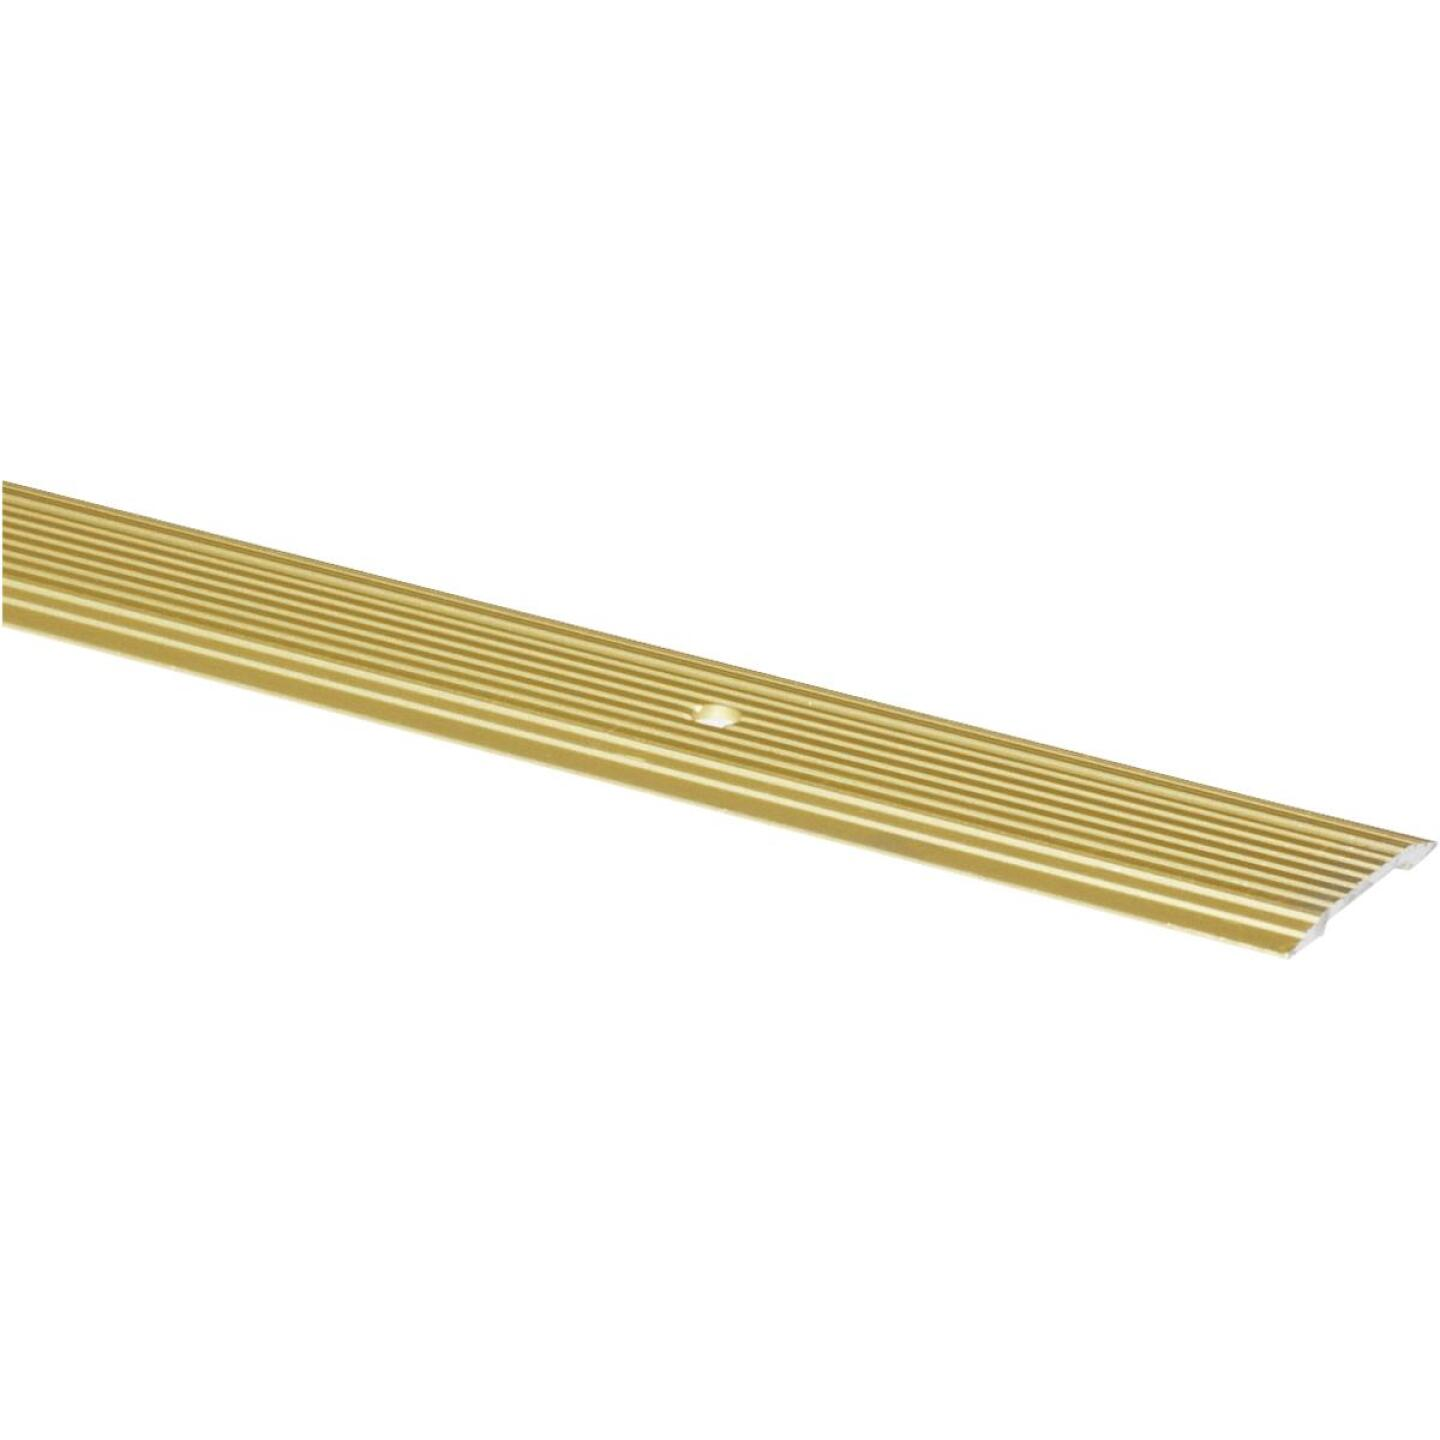 M-D Brass Satin 1-1/4 In. x 6 Ft. Aluminum Seam Binder Image 1